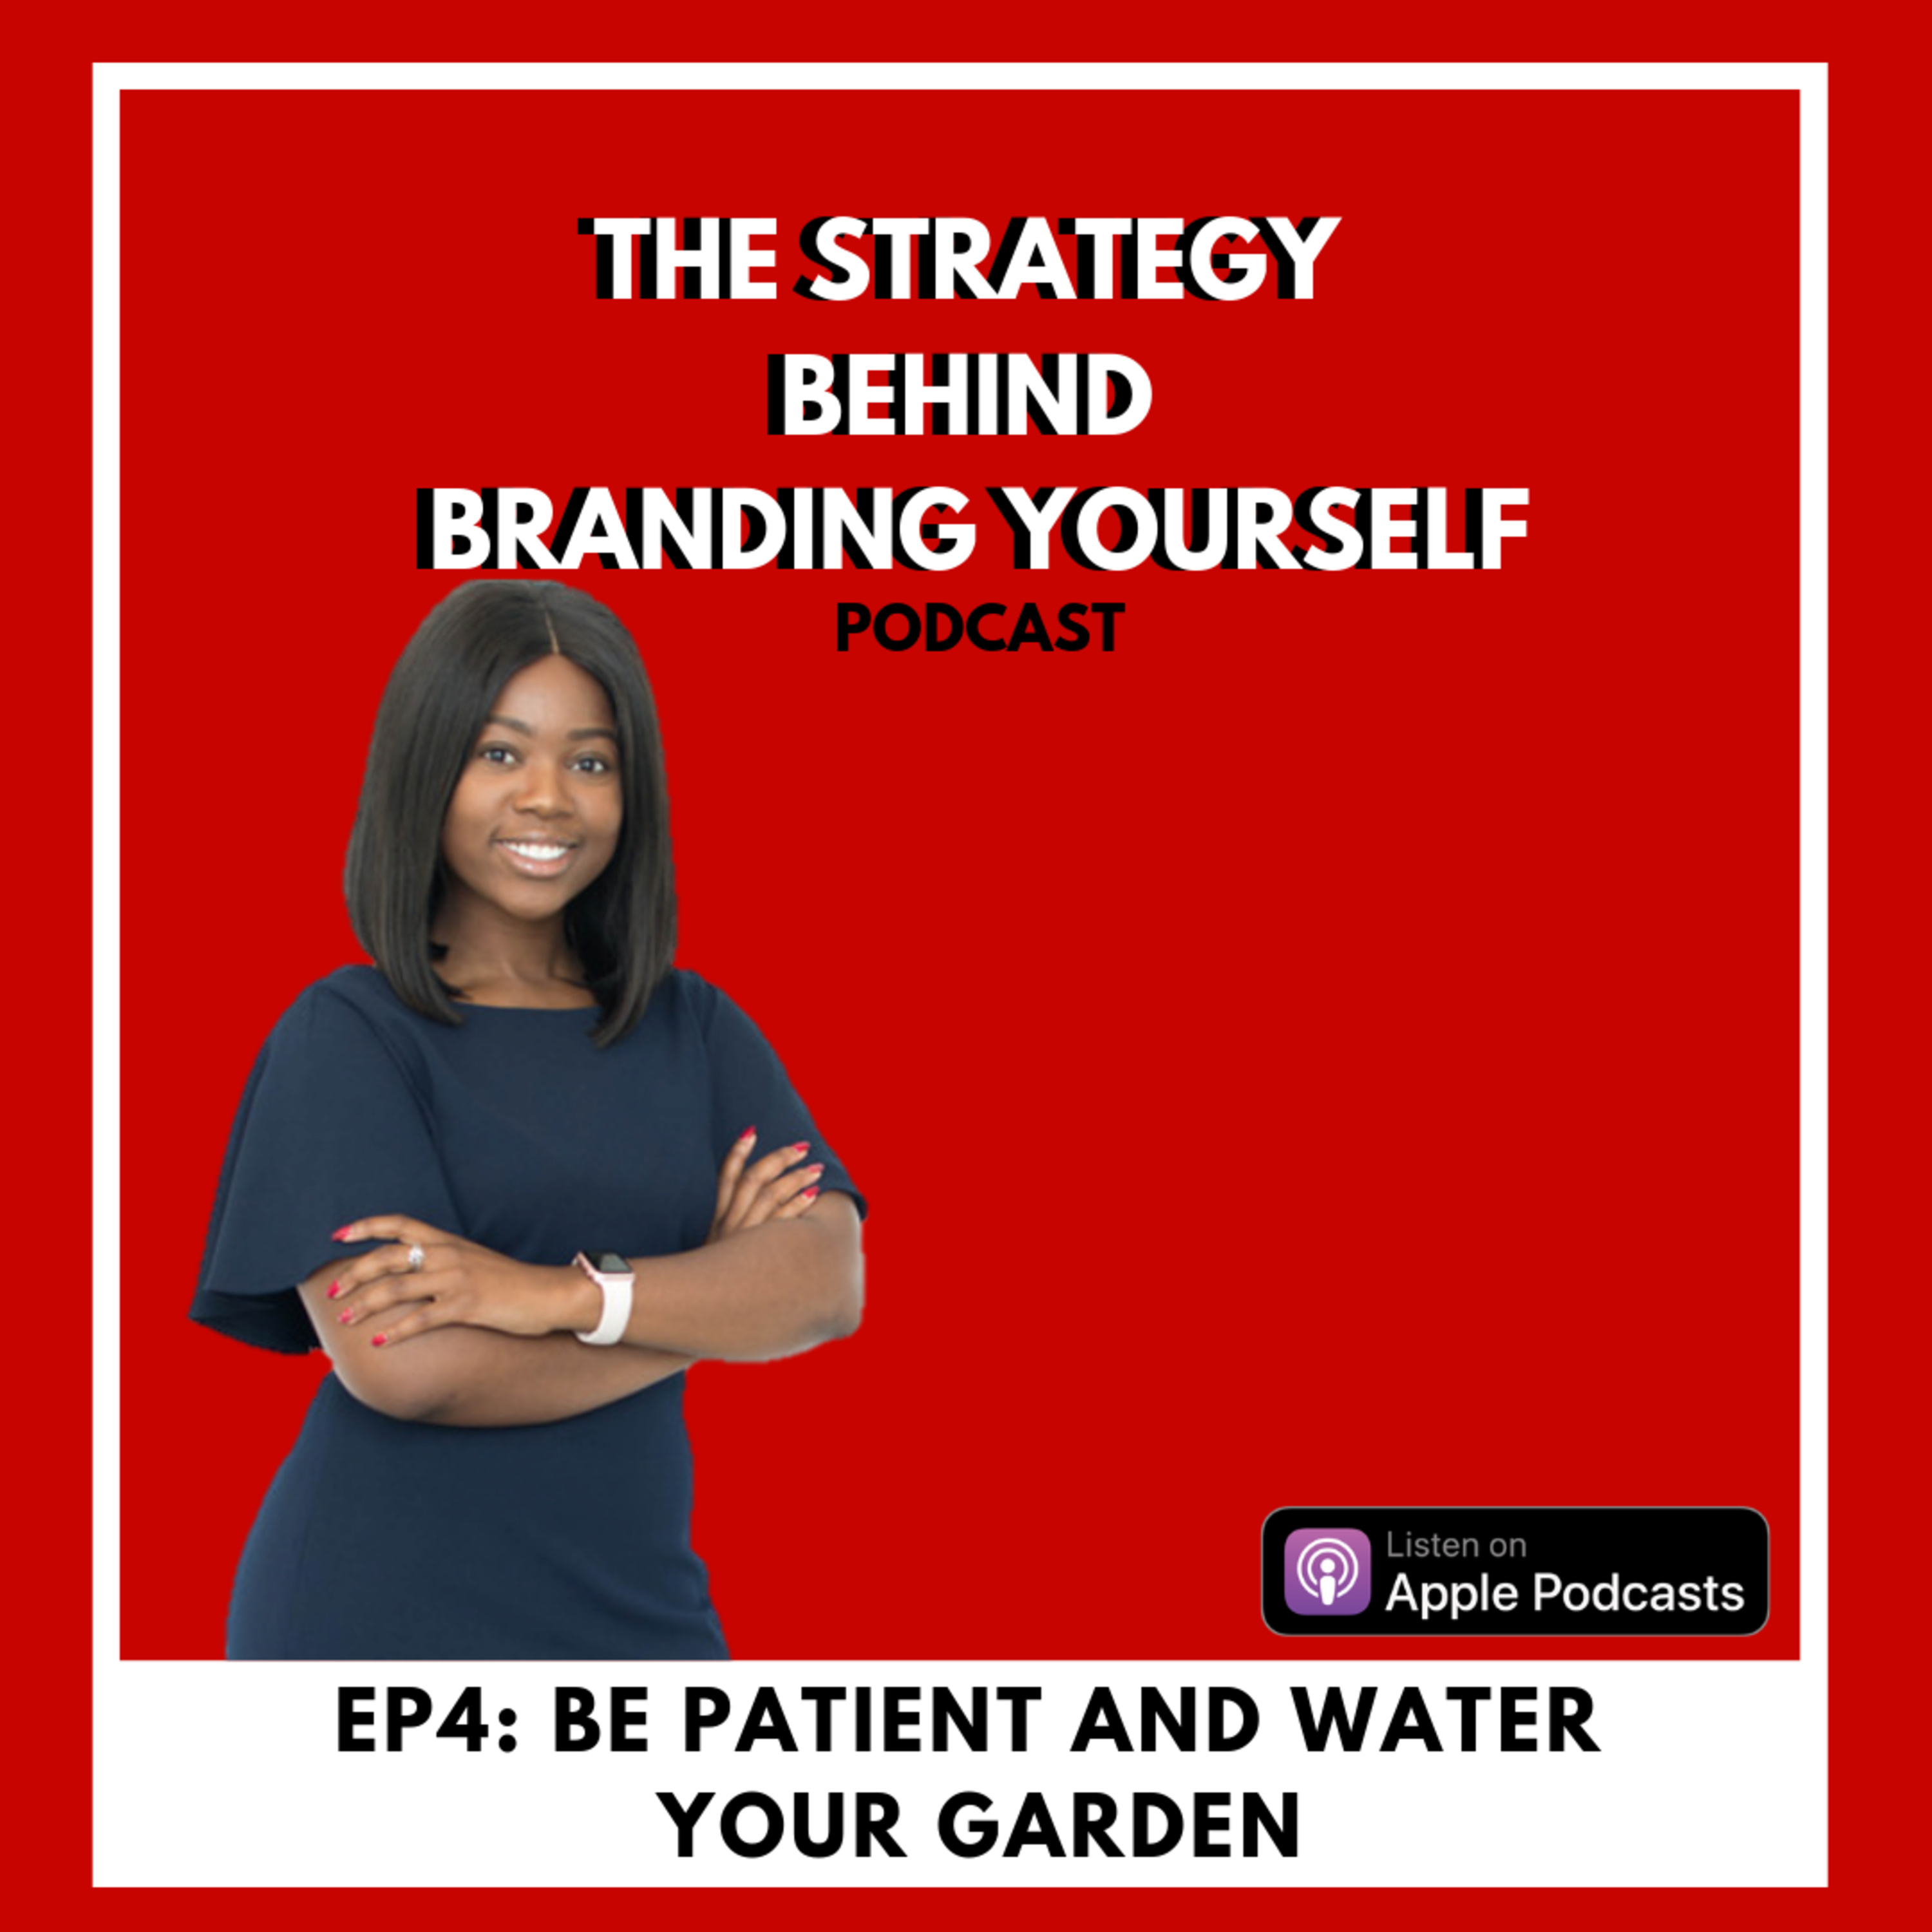 EP4: Be Patient and Water Your Brand Garden